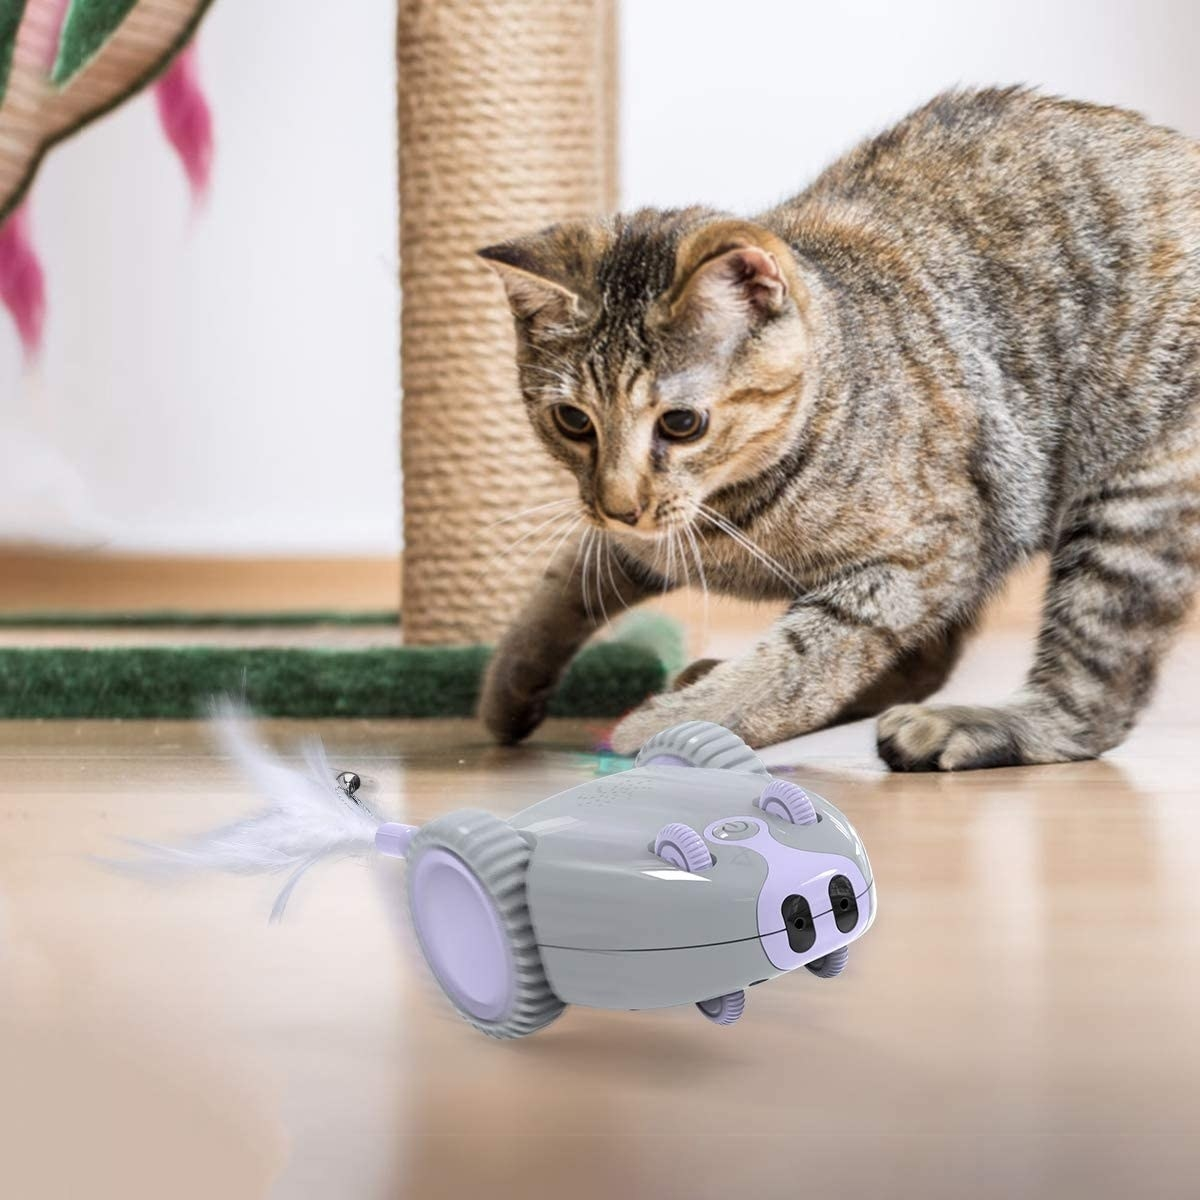 a striped cat chasing a grey and purple toy mouse in wheels with a feather attached to the back of it